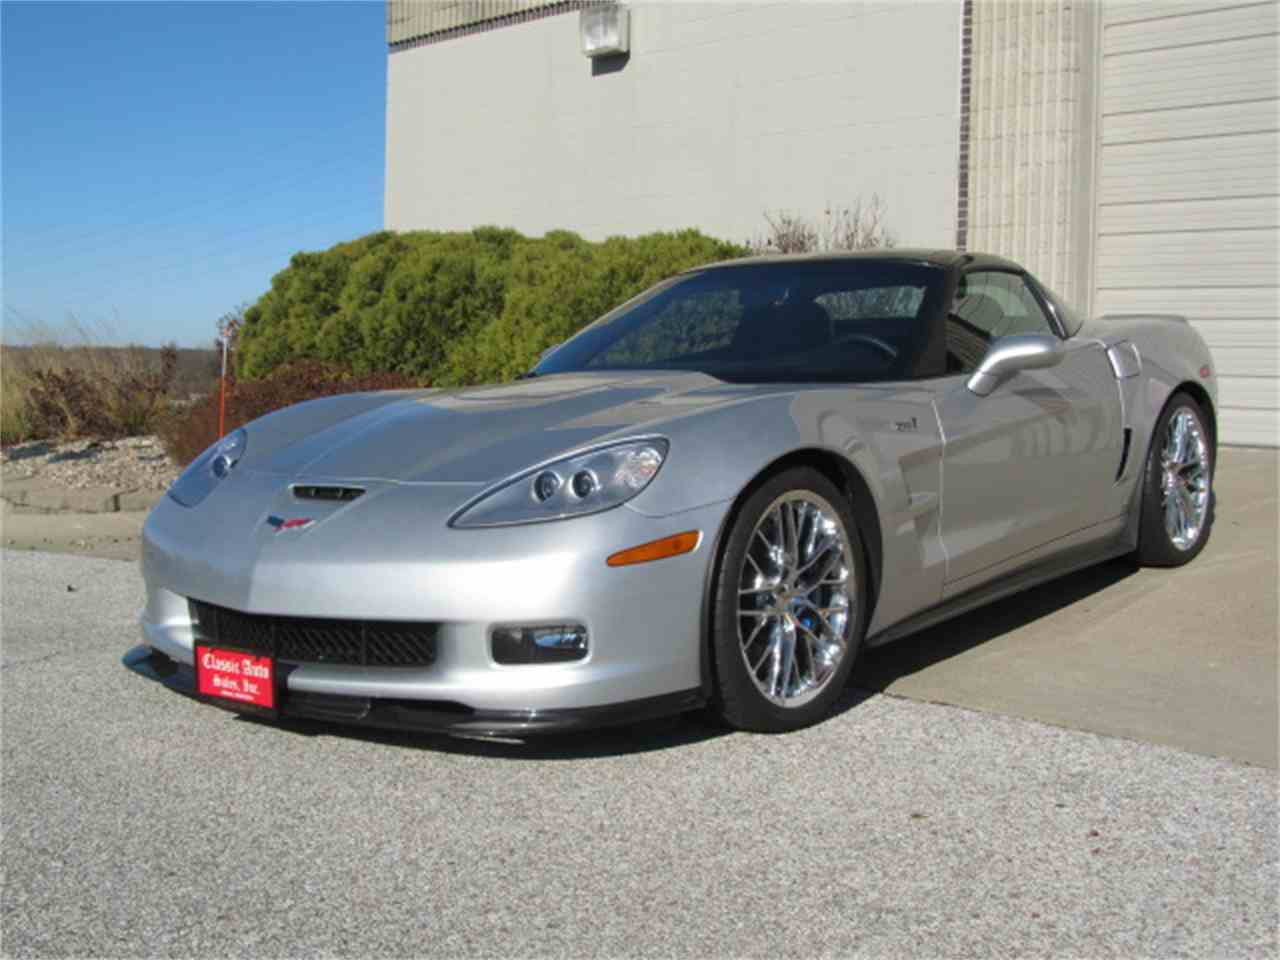 2009 chevrolet corvette zr1 for sale cc 1041852. Black Bedroom Furniture Sets. Home Design Ideas